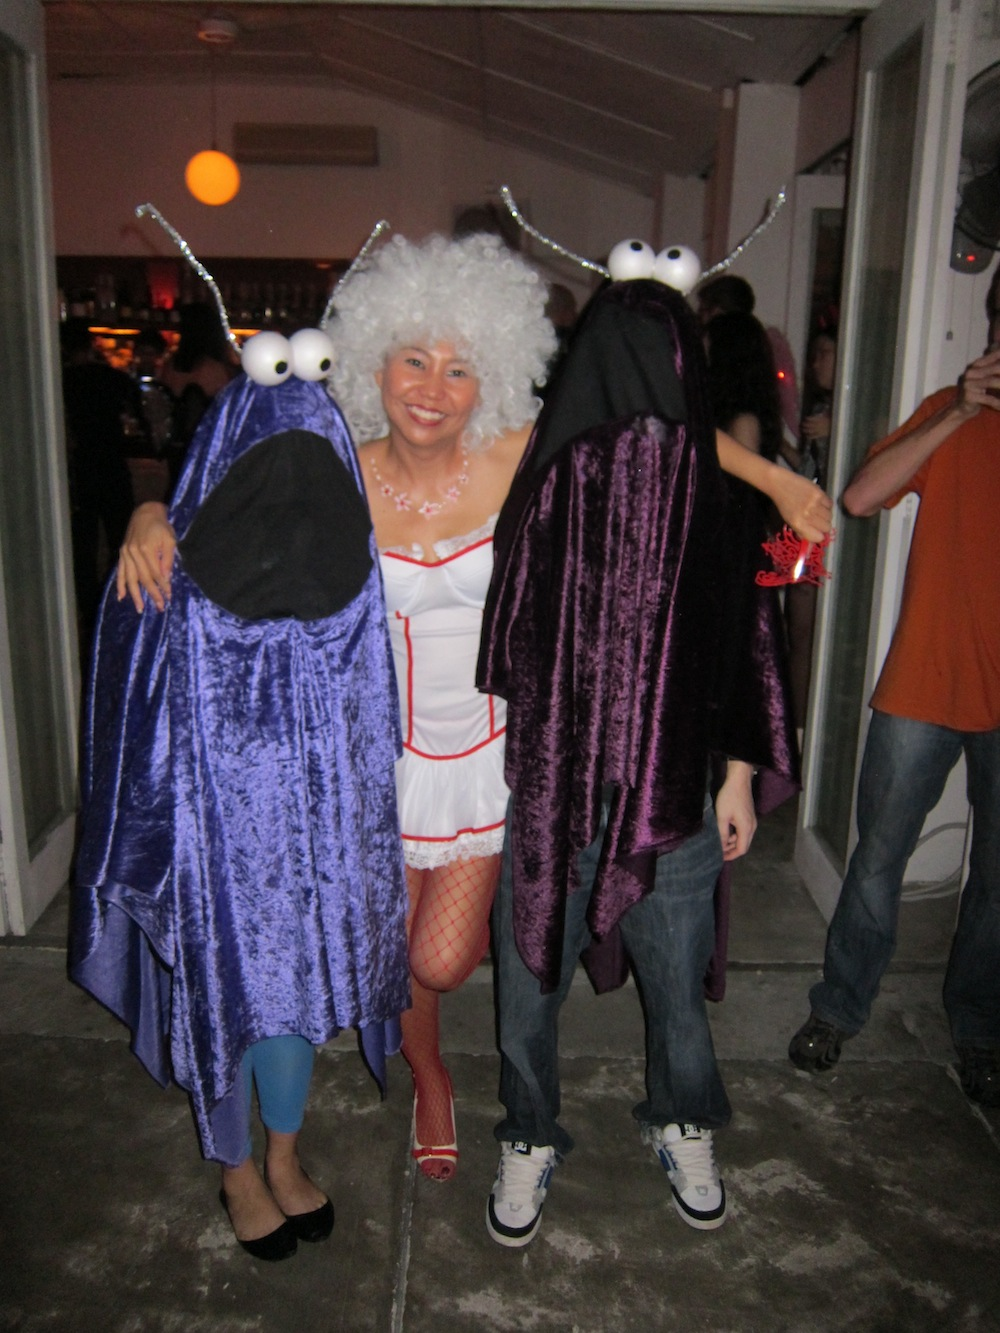 dressed up for halloween singapore| curlytraveller.com